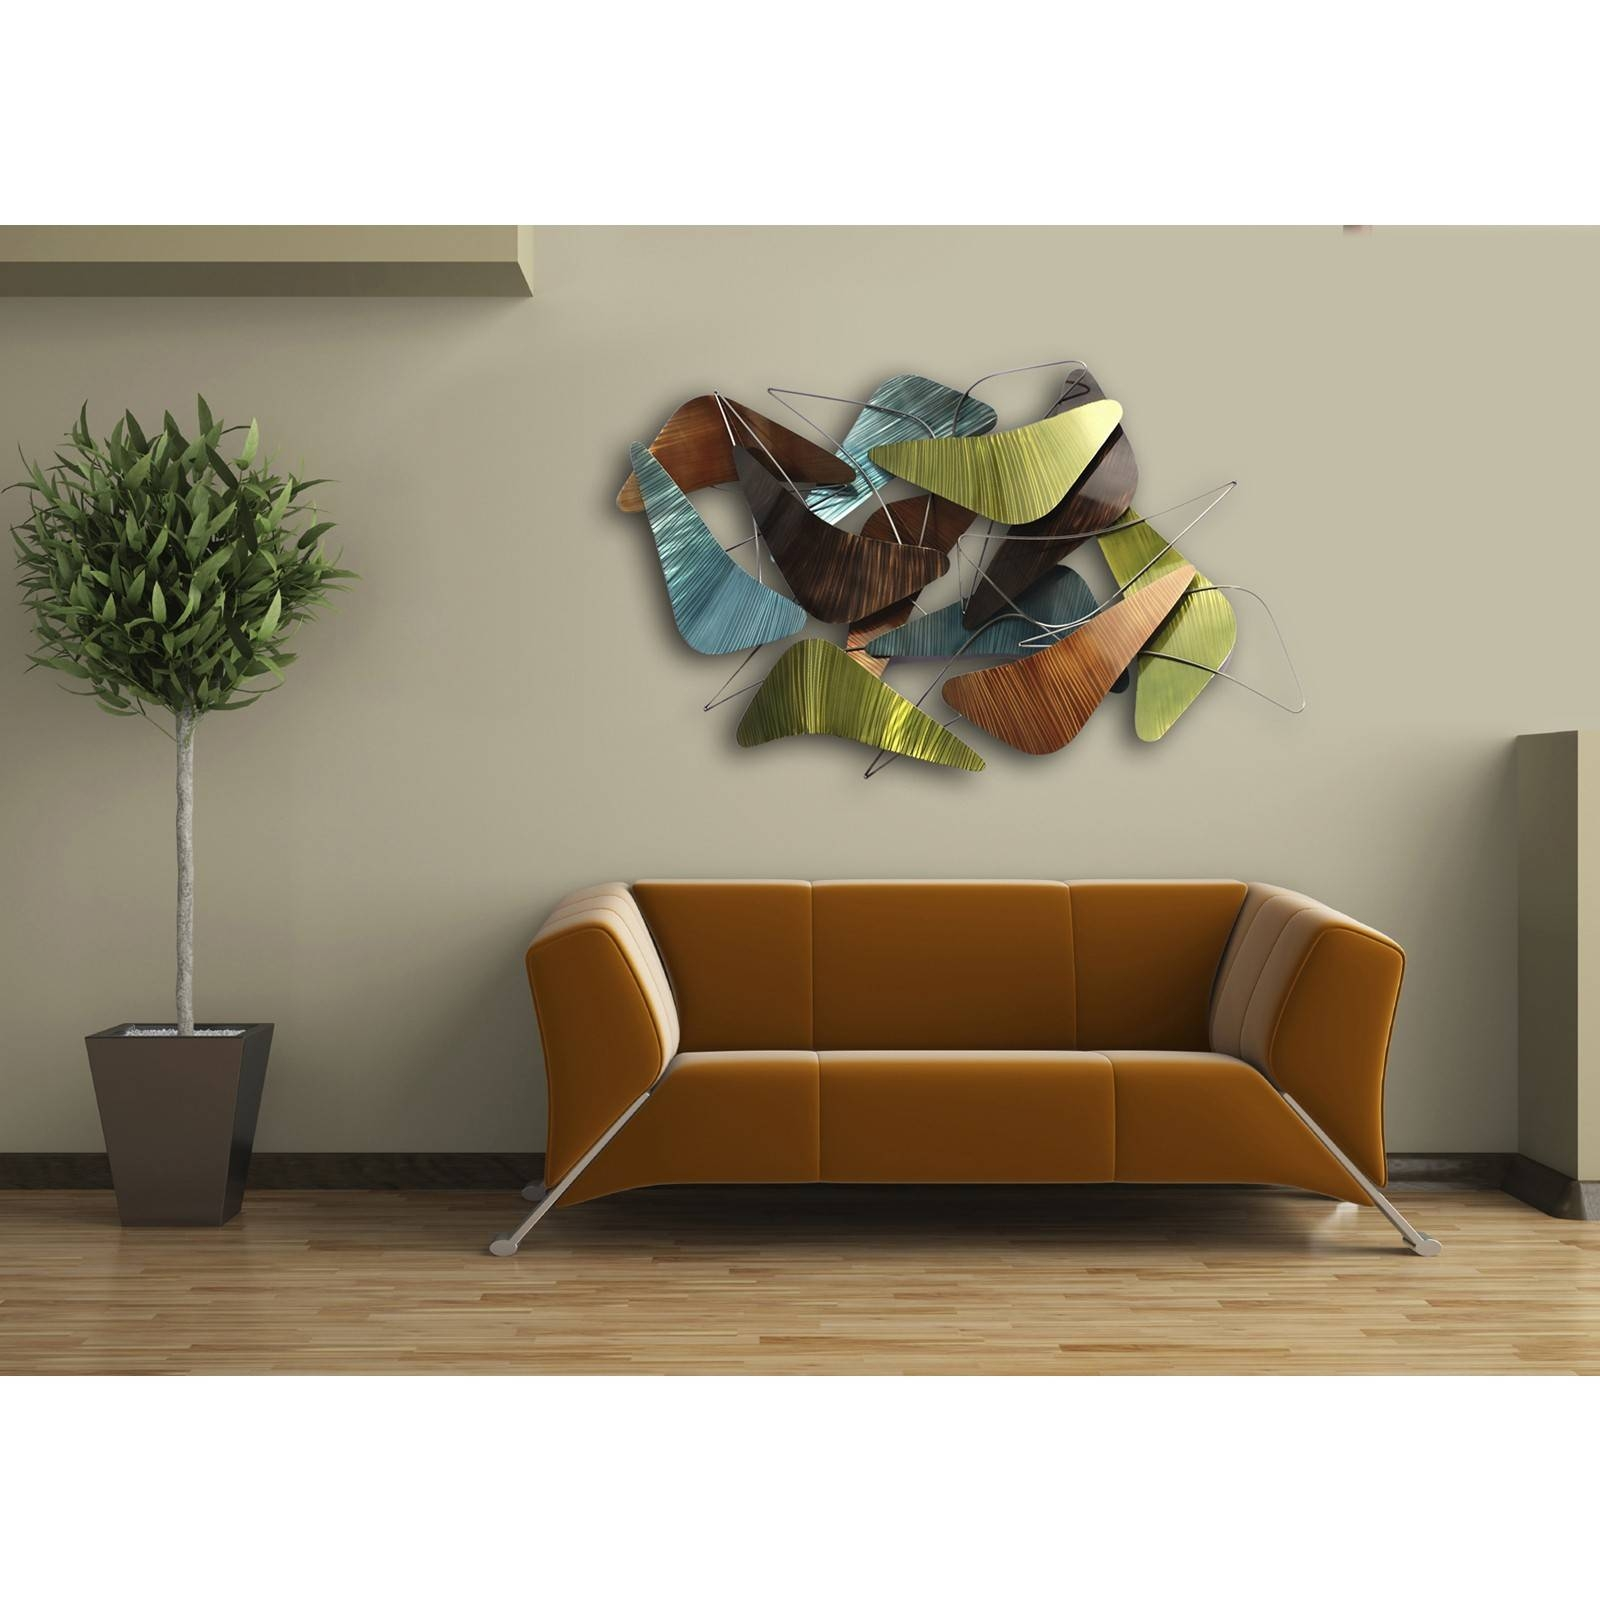 Wall Art Designs: Nova Lighting Wall Art Nova Wall Decor, Nova regarding Most Popular Nova Wall Art